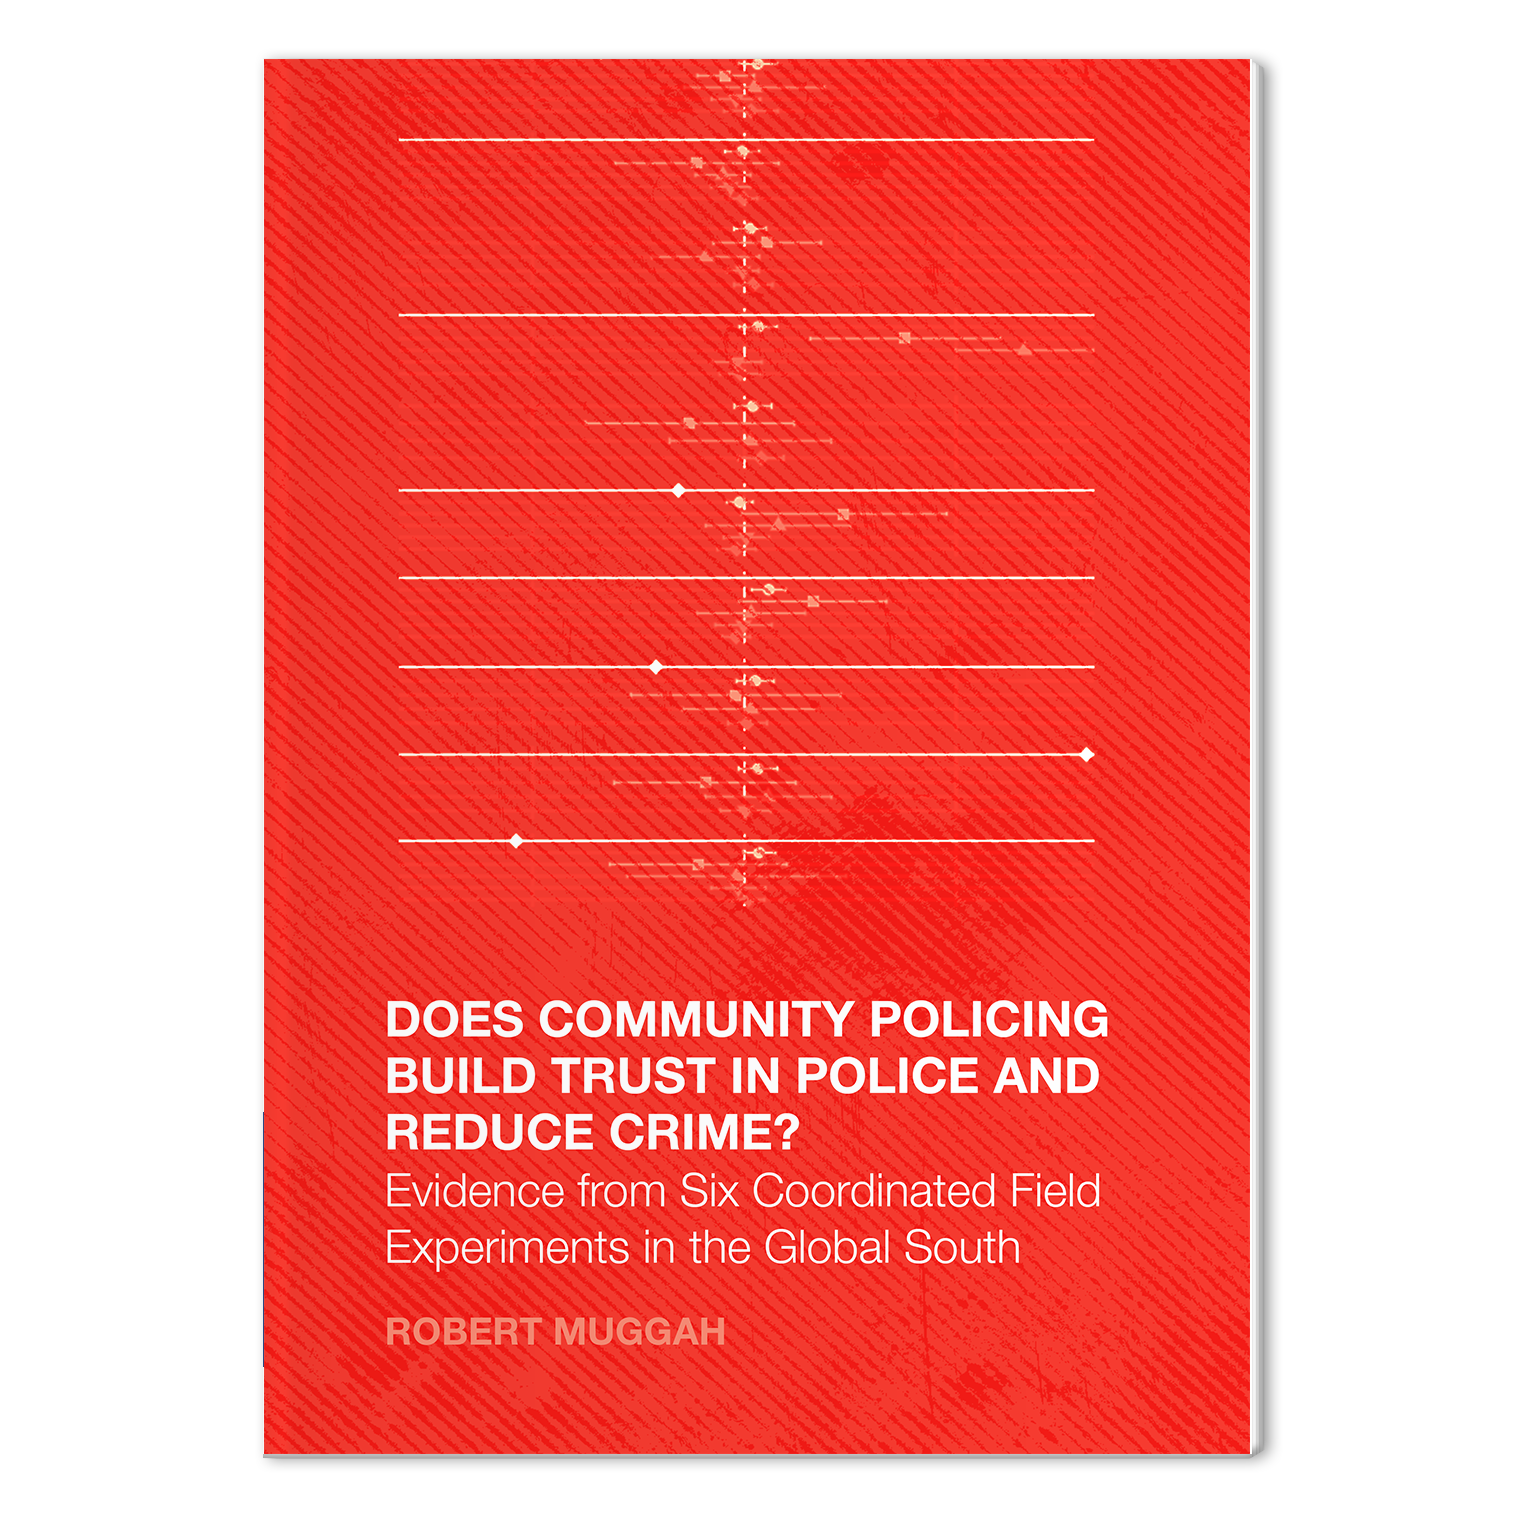 Does Community Policing Build Trust in Police and Reduce Crime?